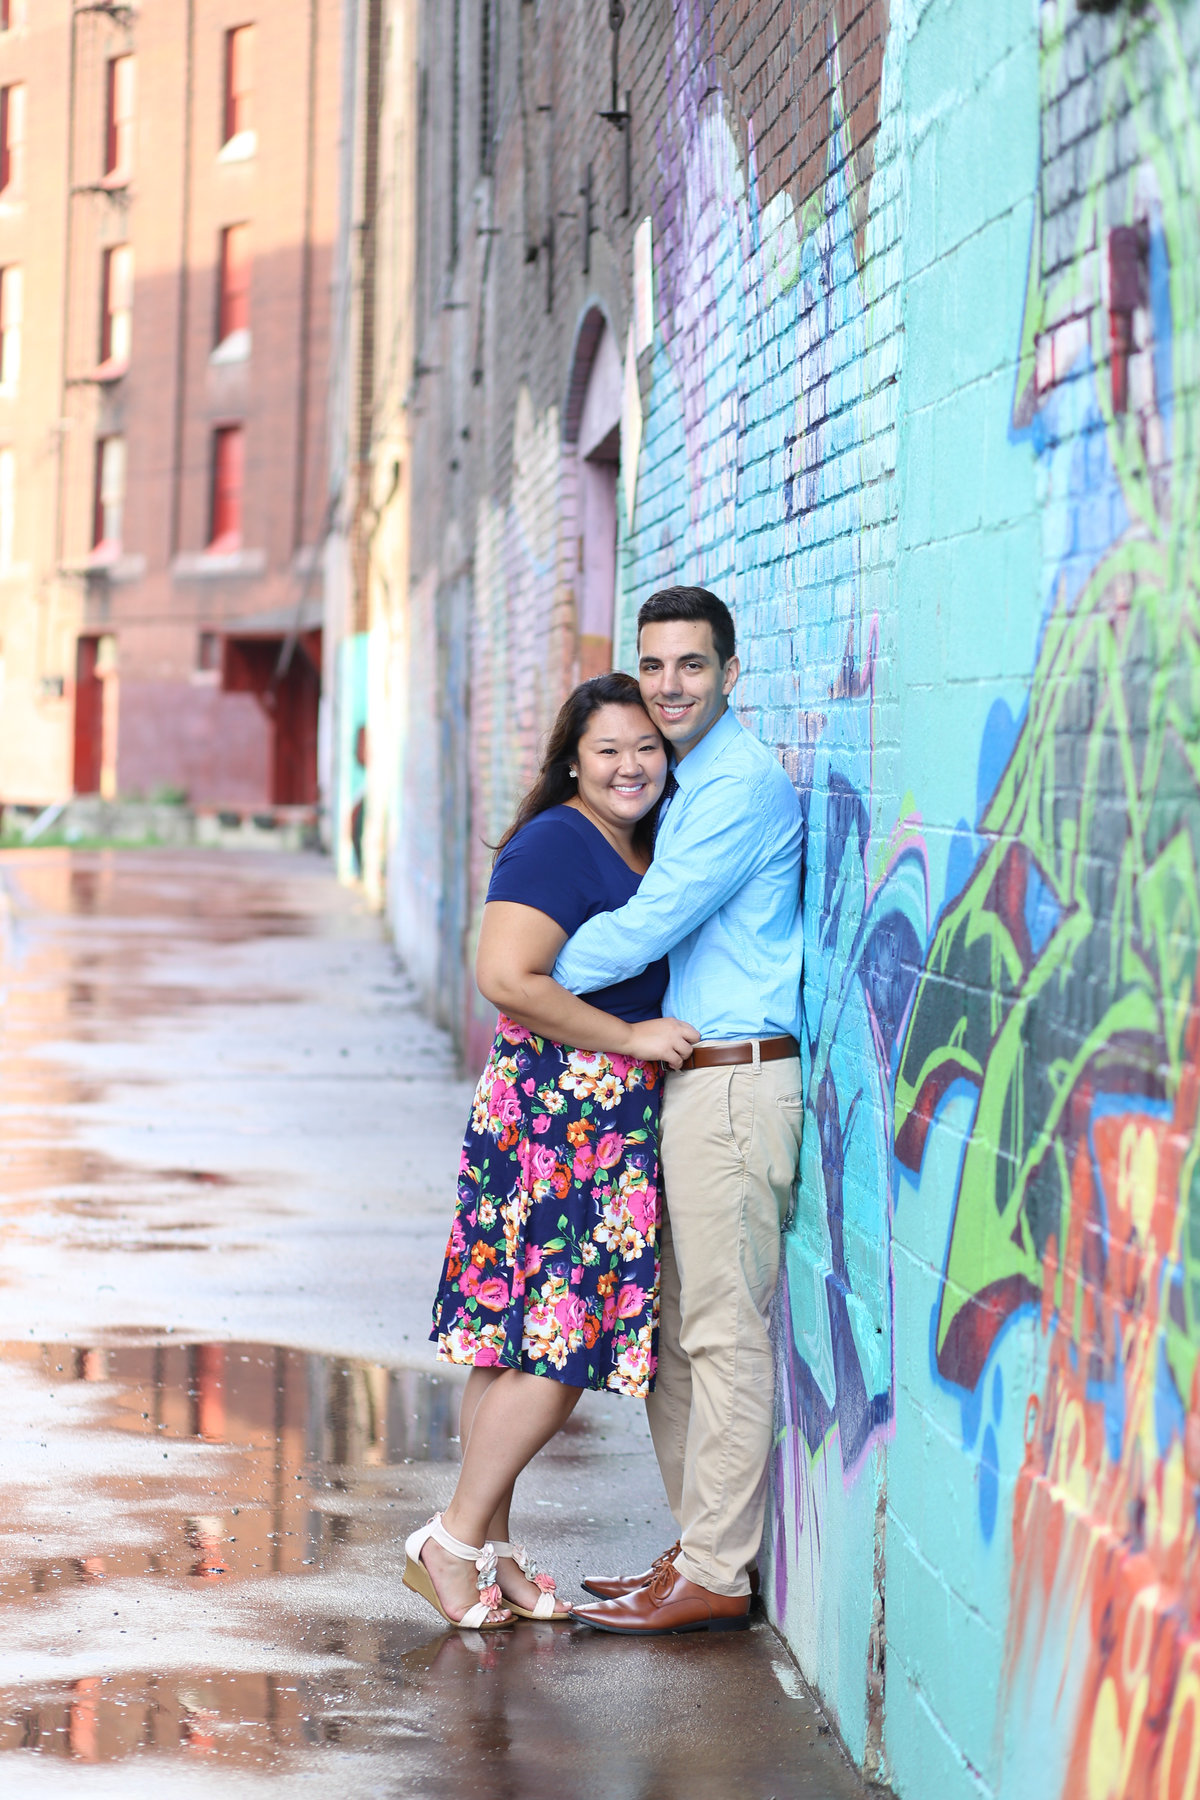 West Bottoms Kansas City Graffiti Engagement - Kansas City Overland Park Engagement Photographer - E Session - Engagement - Engaged - Engagement Ring